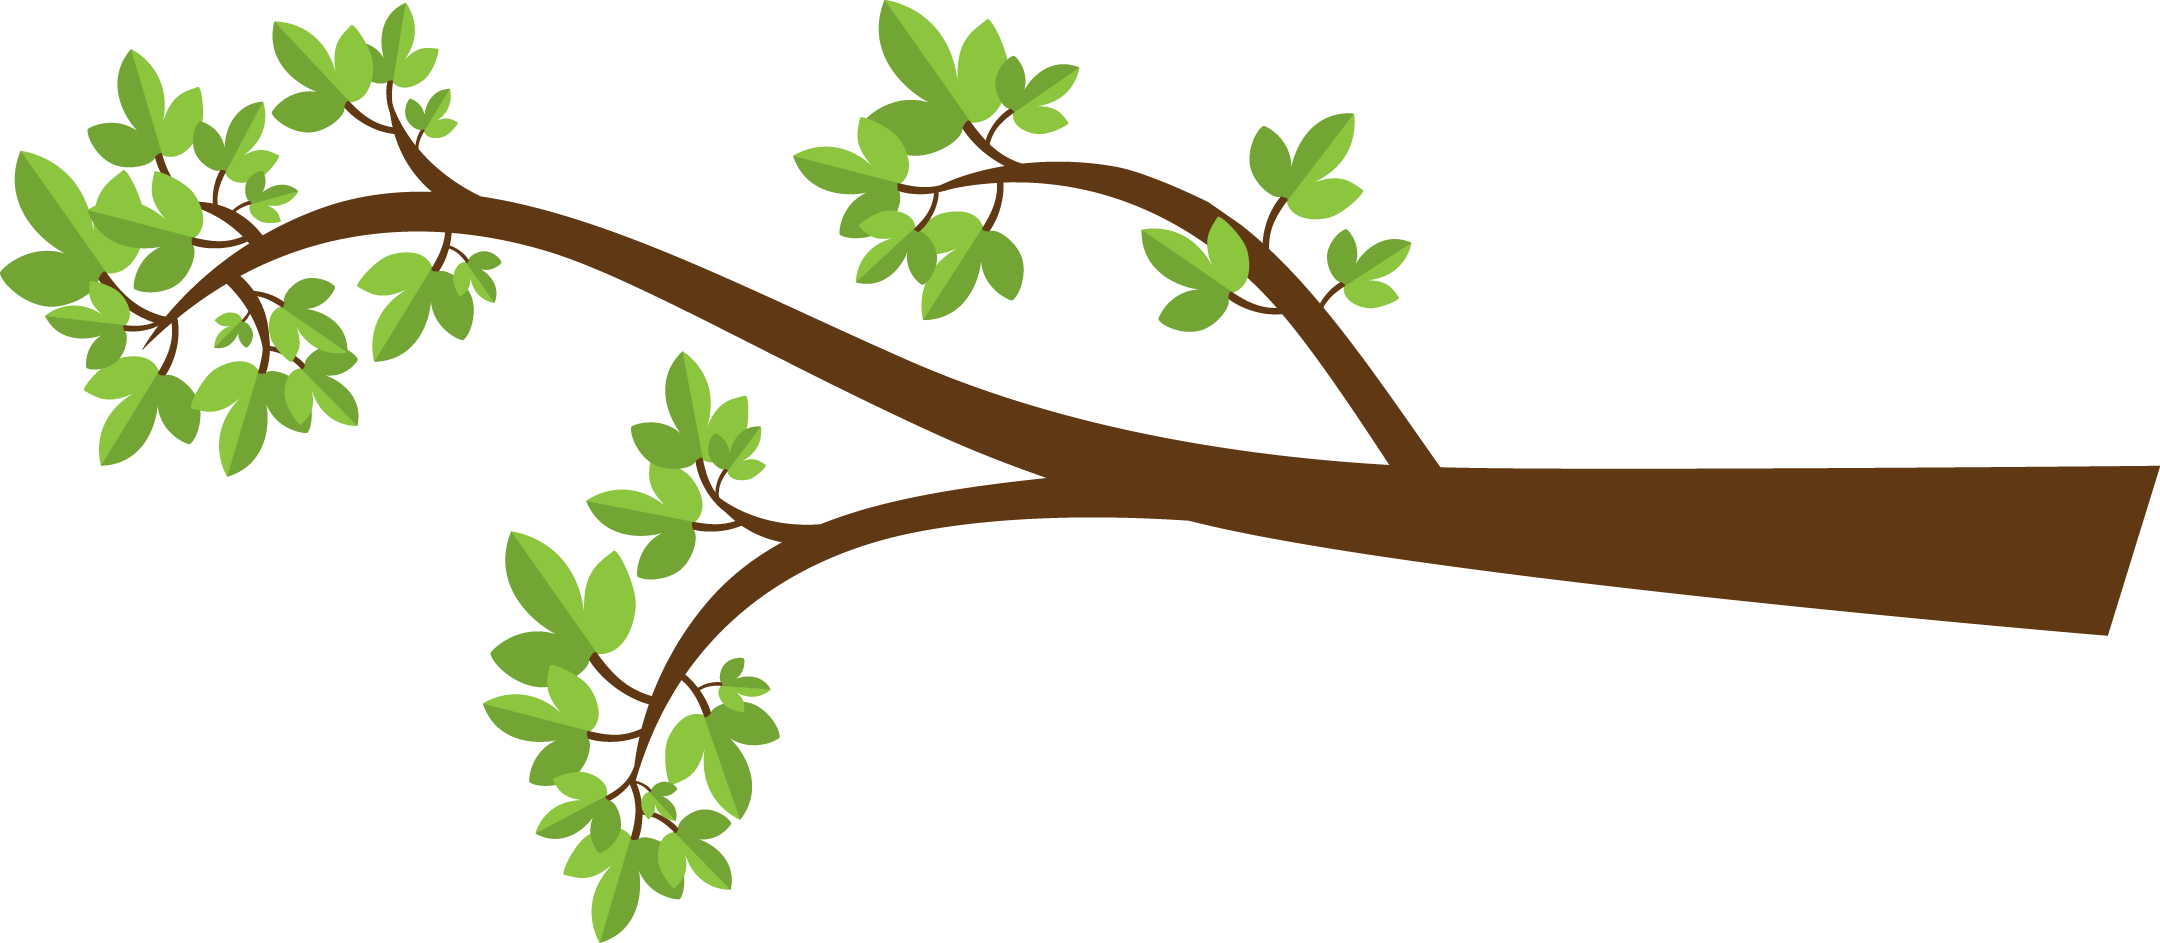 Branch clip art free. Crops clipart drawing